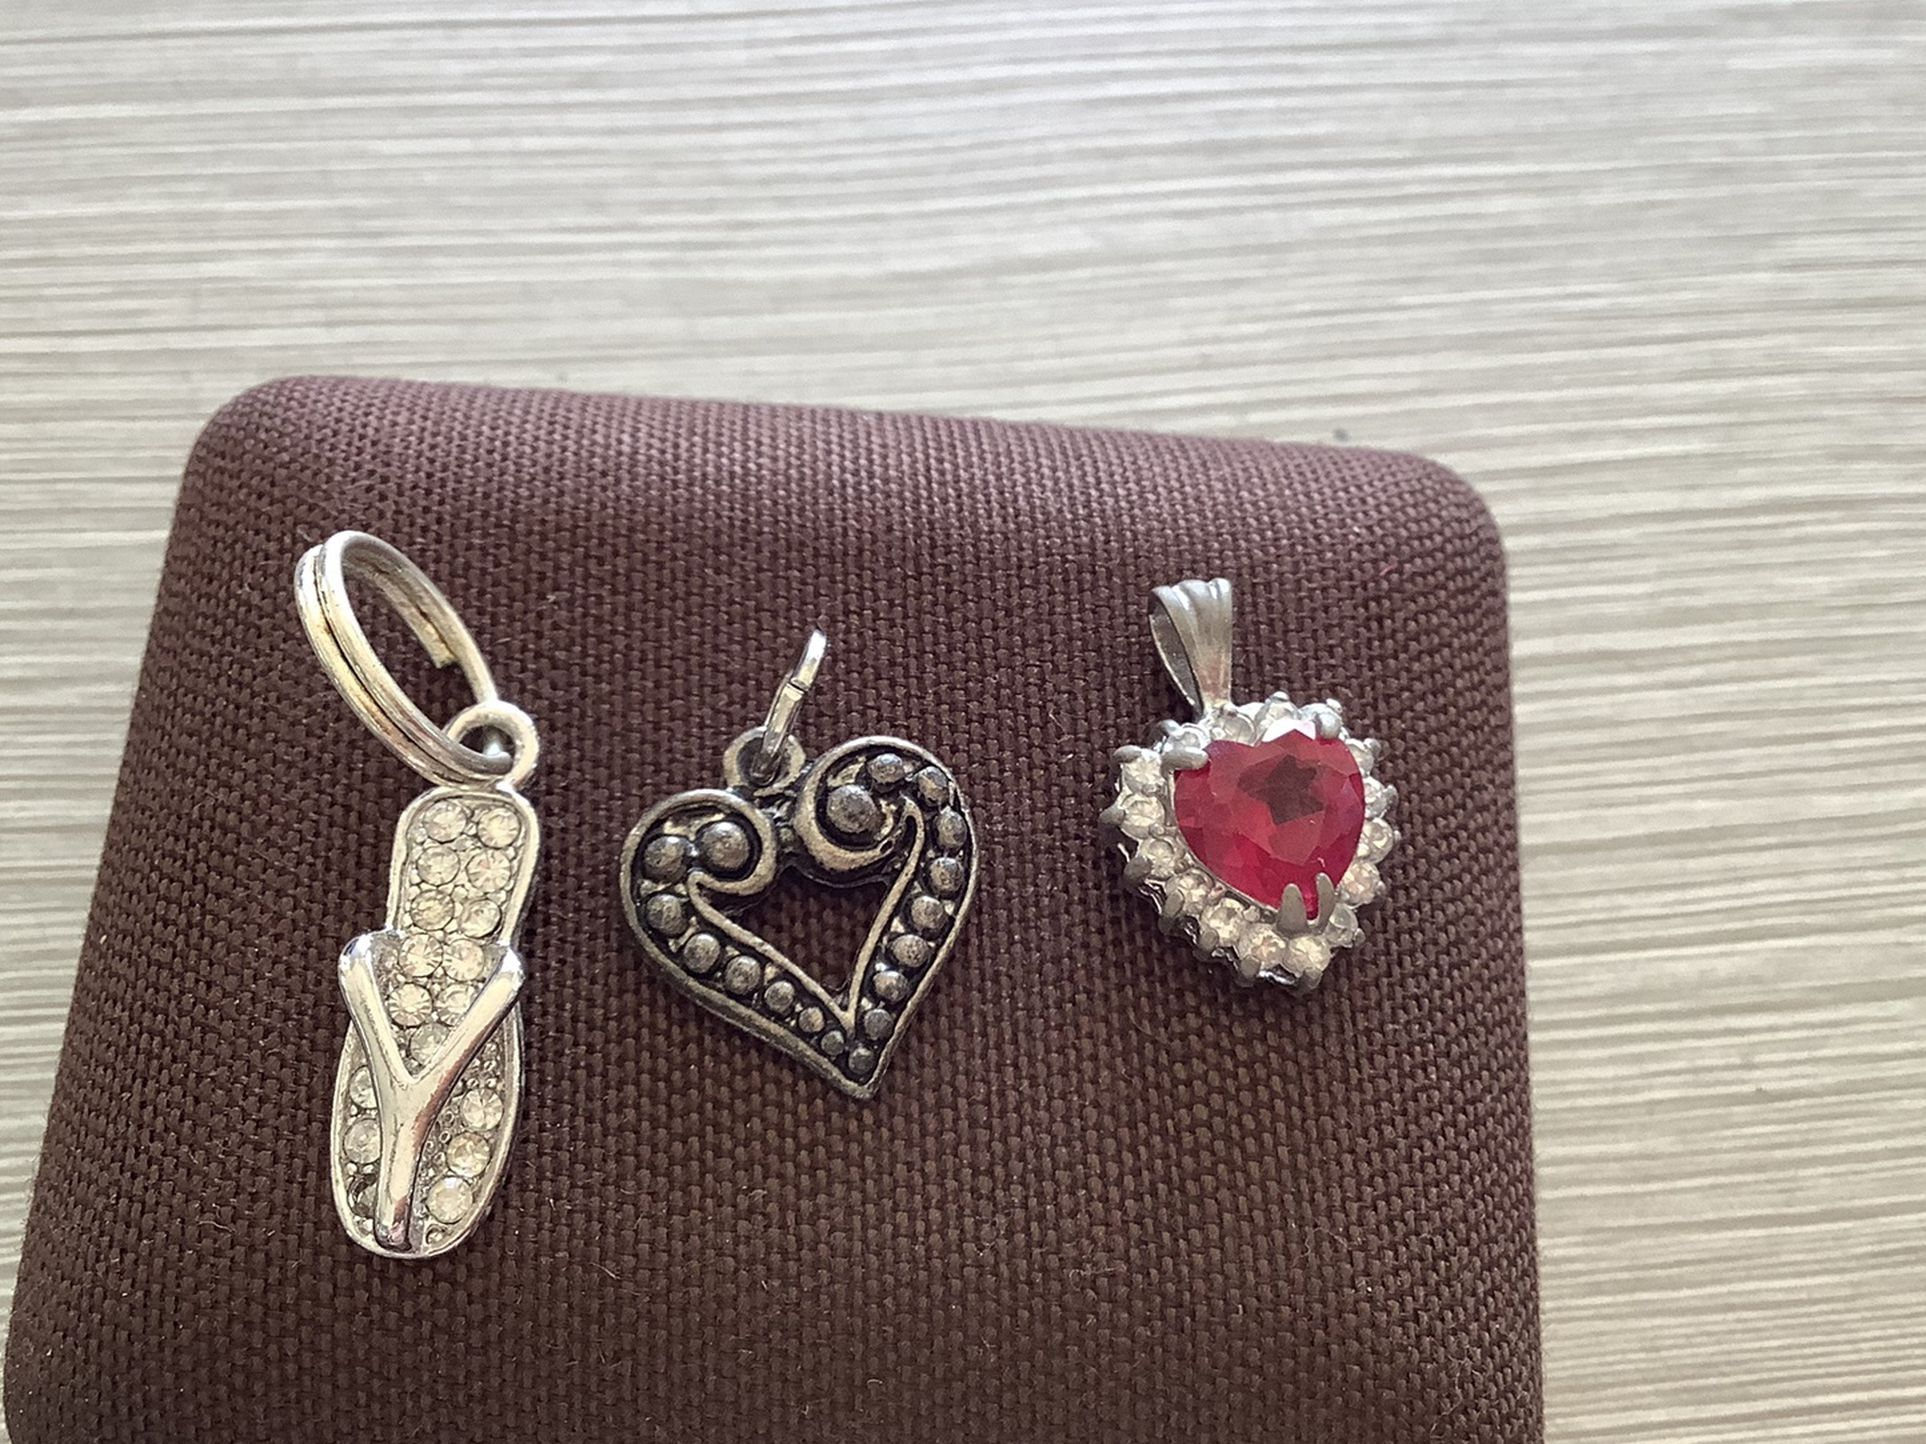 3 Charms For Necklace $3